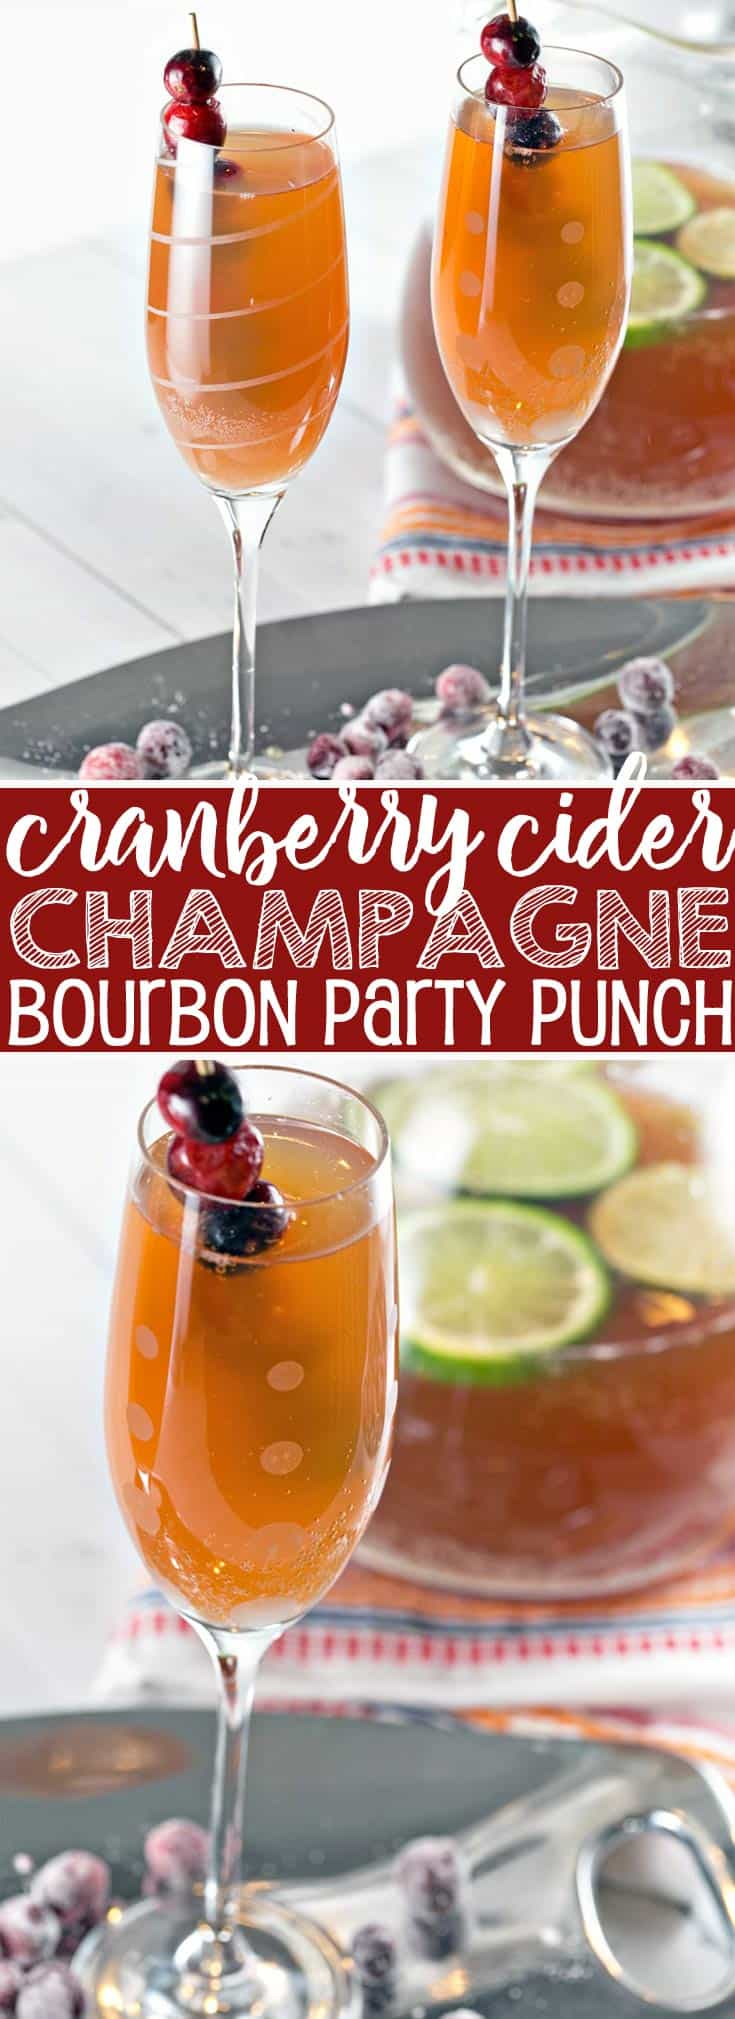 Cranberry Cider Champagne Punch: the perfect holiday party punch, preferably with an extra splash of bourbon. {Bunsen Burner Bakery} #punch #partypunch #cranberry #applecider #champagne #bourbon #thanksgiving #christmas